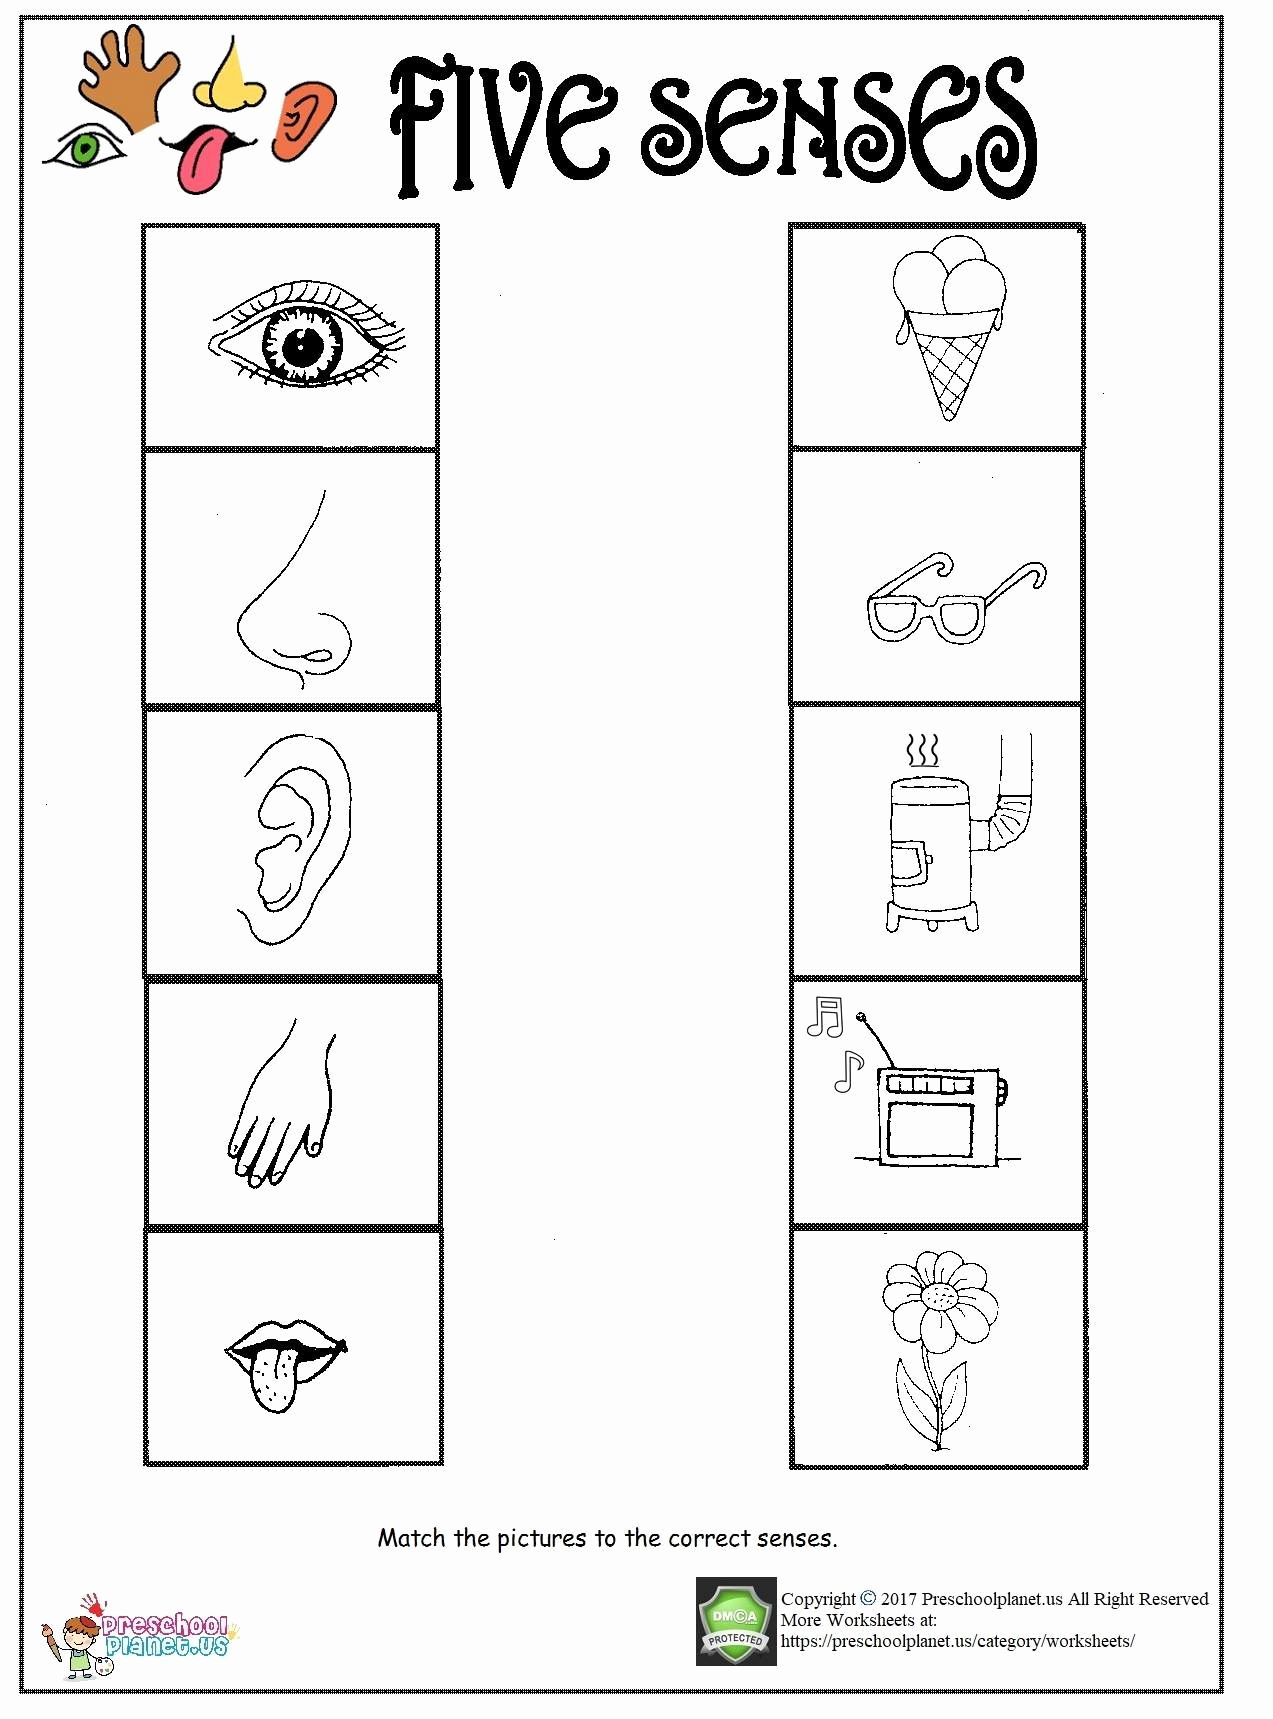 Preschool Worksheets Five Senses In